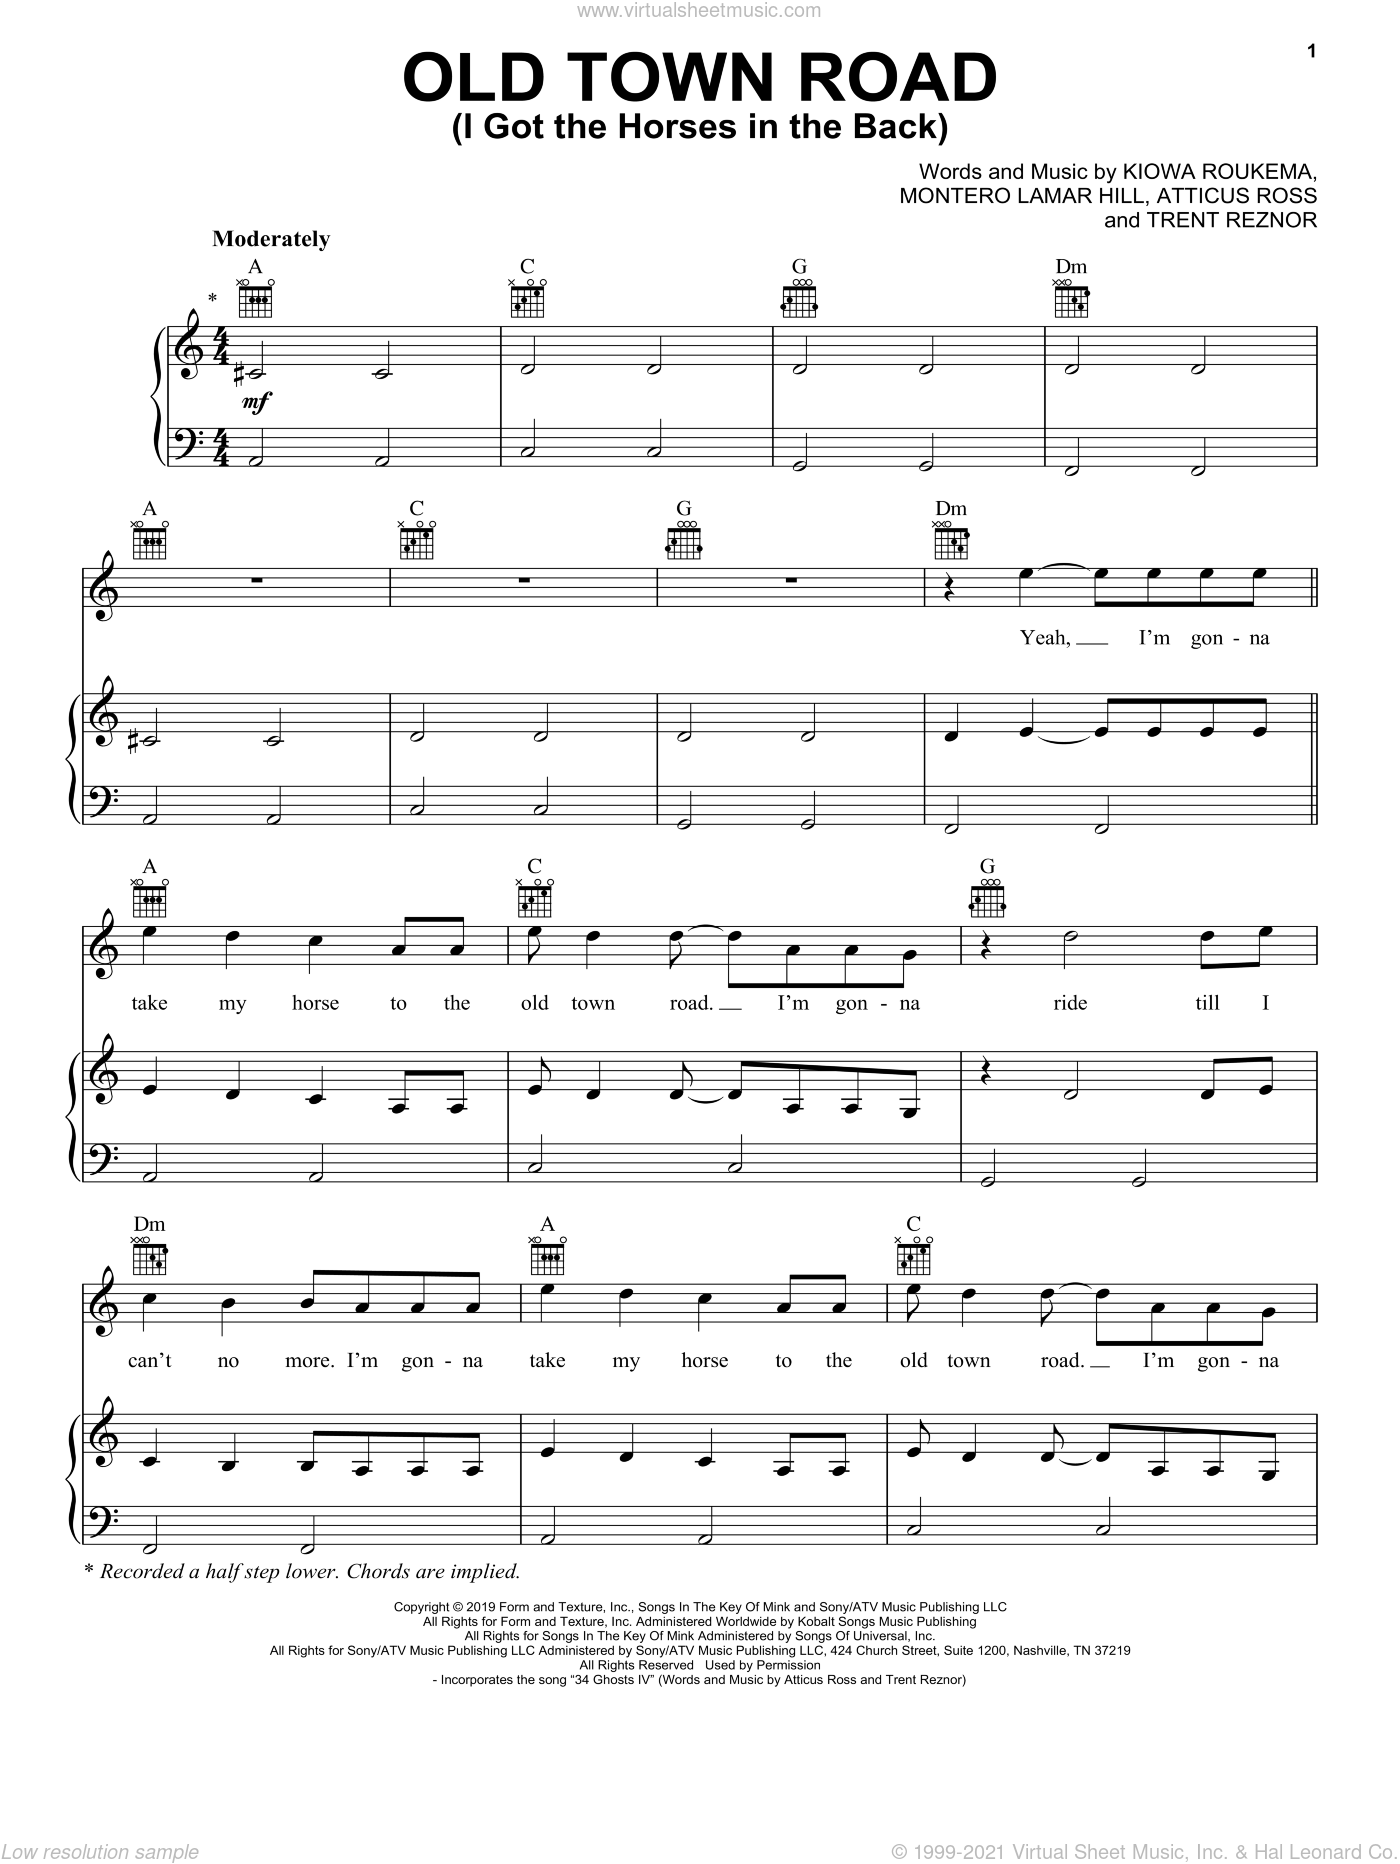 Old Town Road (I Got The Horses In The Back) sheet music for voice, piano or guitar by Lil Nas X, Lil Nas X feat. Billy Ray Cyrus, Atticus Ross, Kiowa Roukema, Montero Lamar Hill and Trent Reznor, intermediate skill level